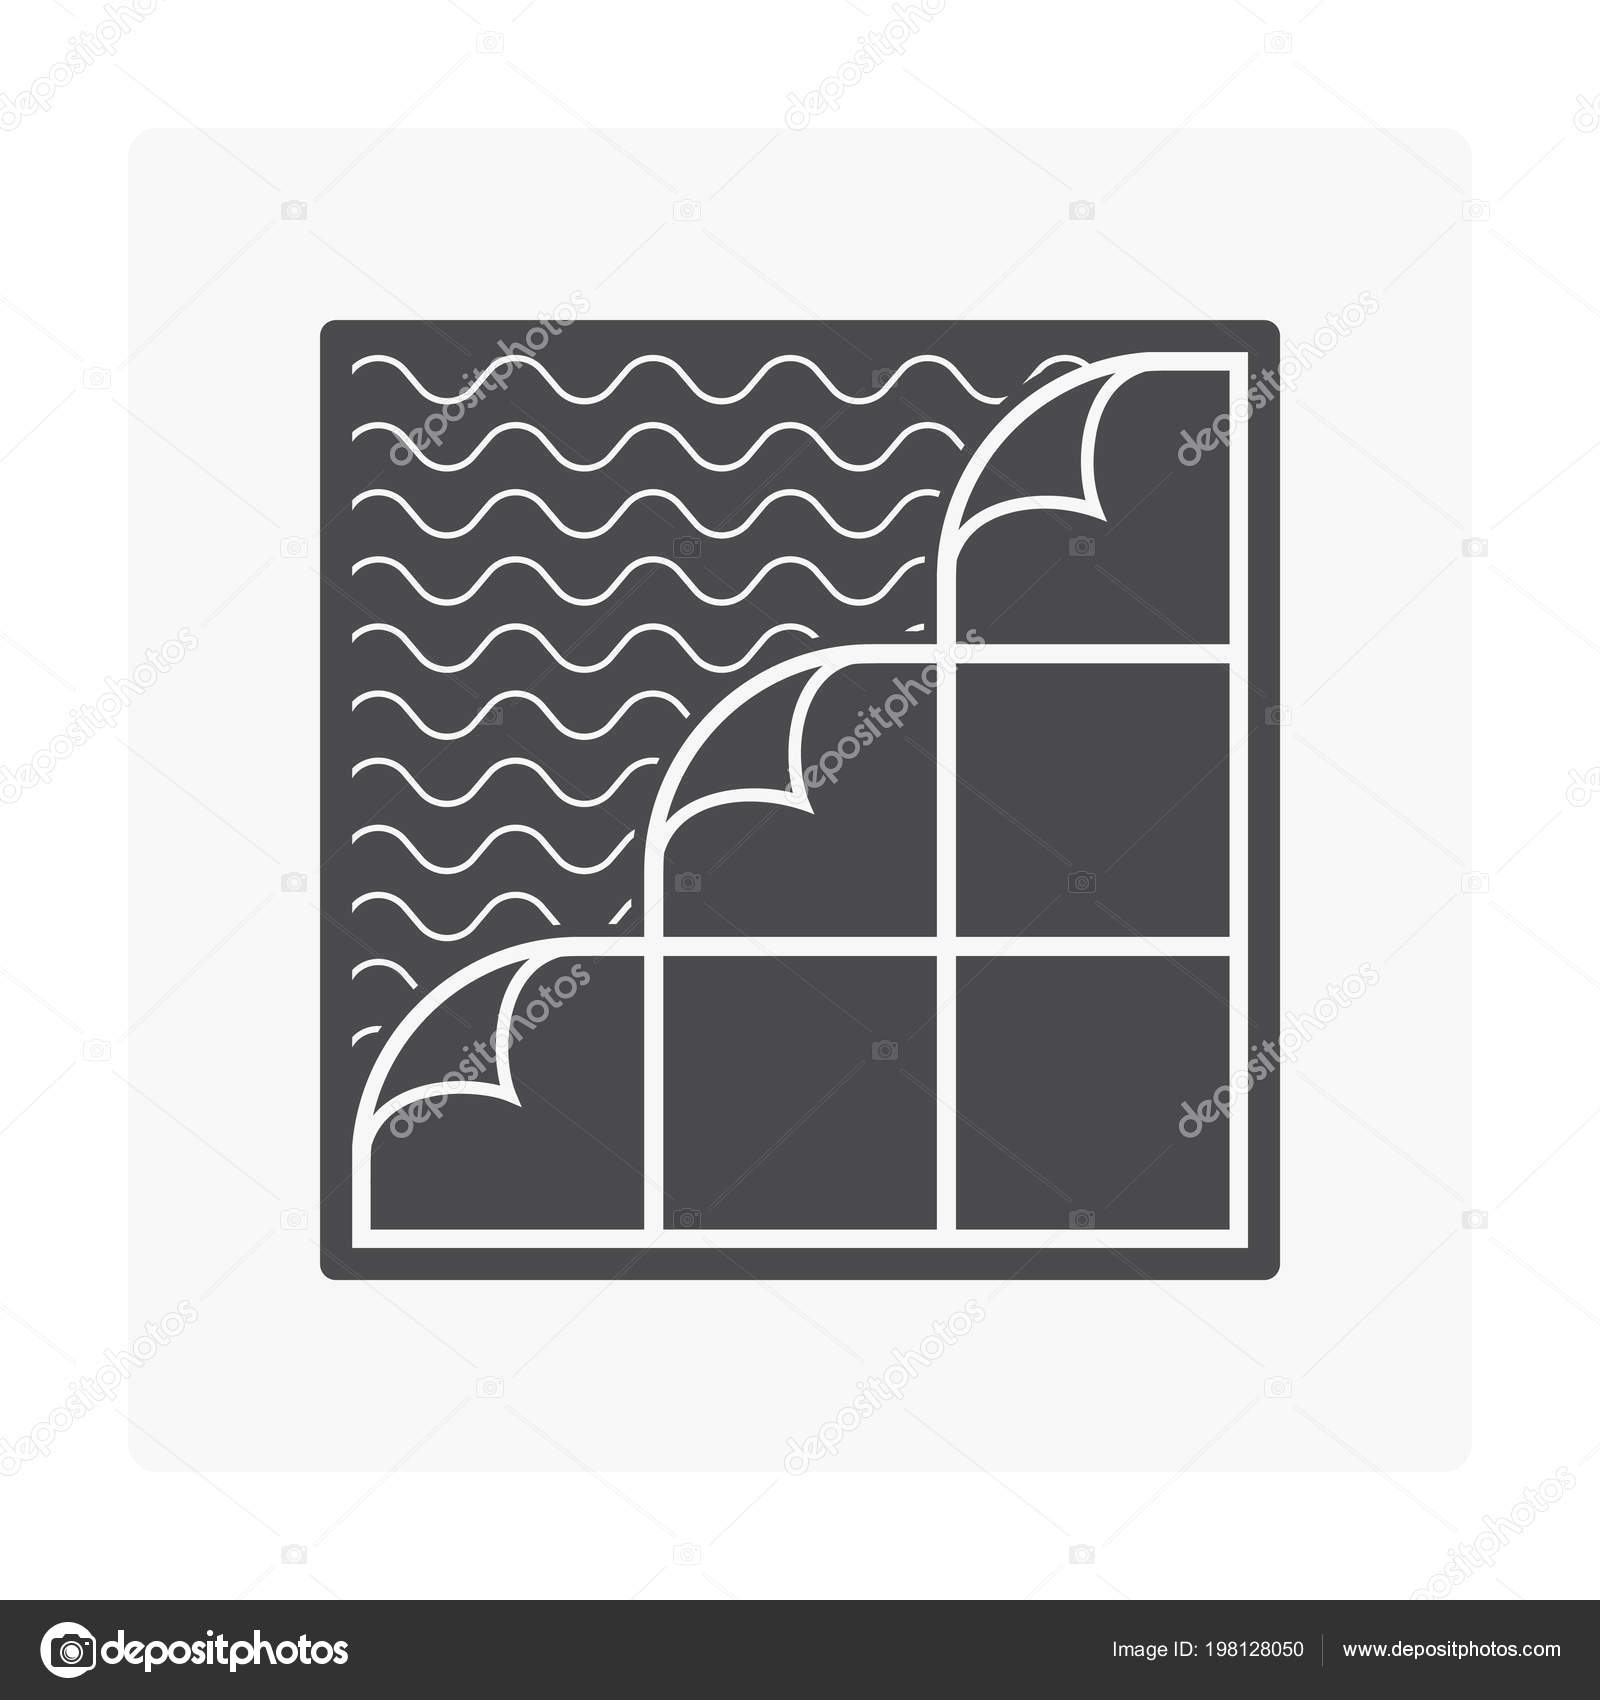 hight resolution of tile floor installation material icon stock vector